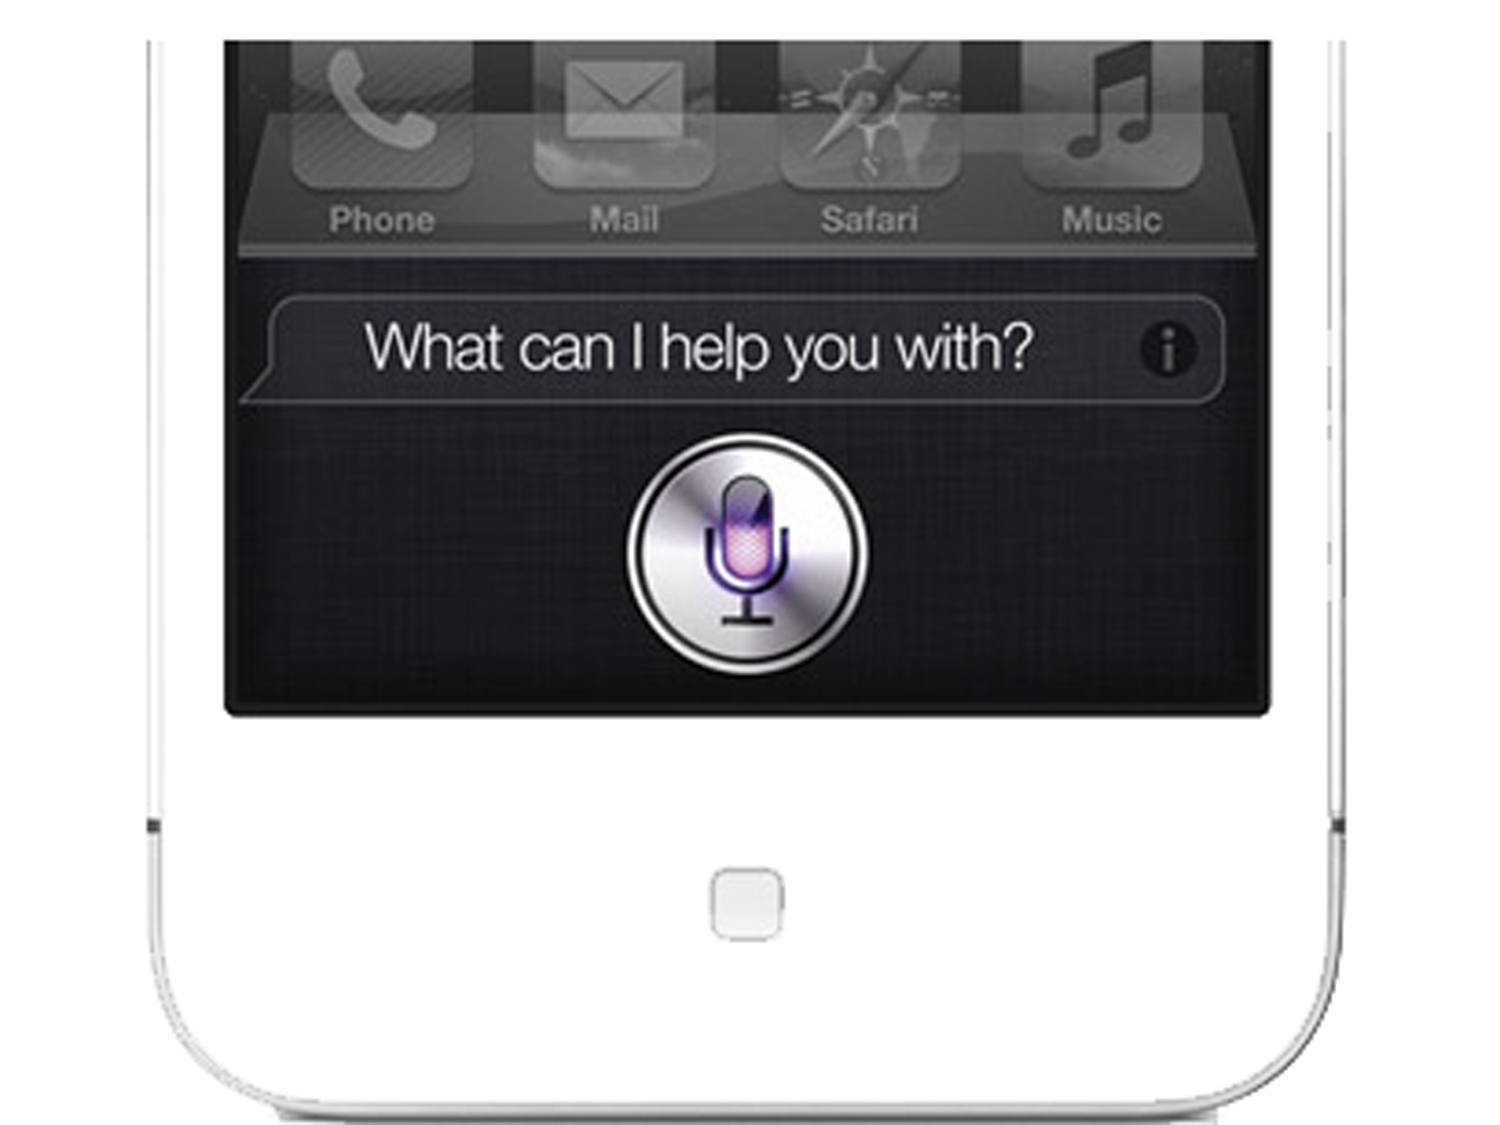 Hackers claim they've cracked iPhone 4S' Siri to run on